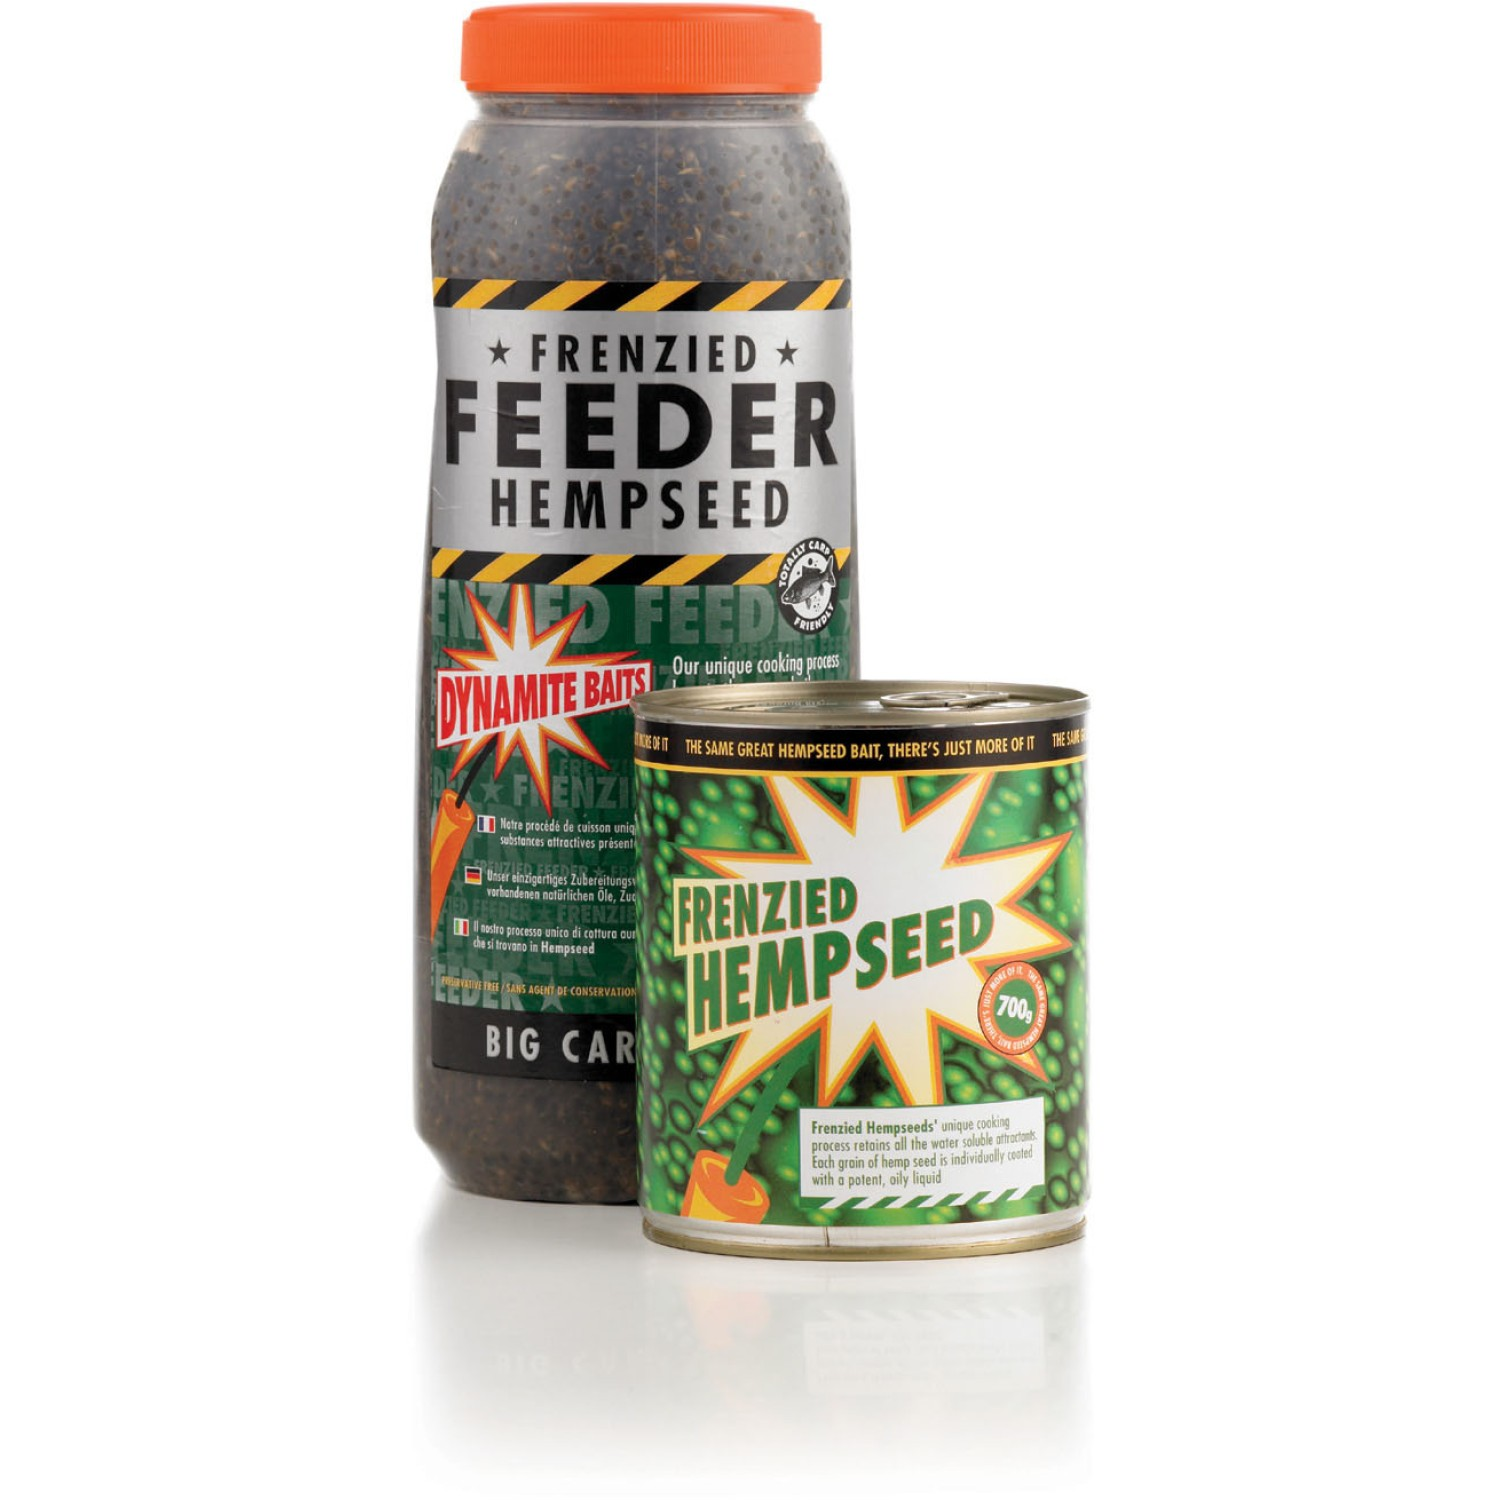 Dynamite Baits Particles Frenzied Hempseed 2.5 L